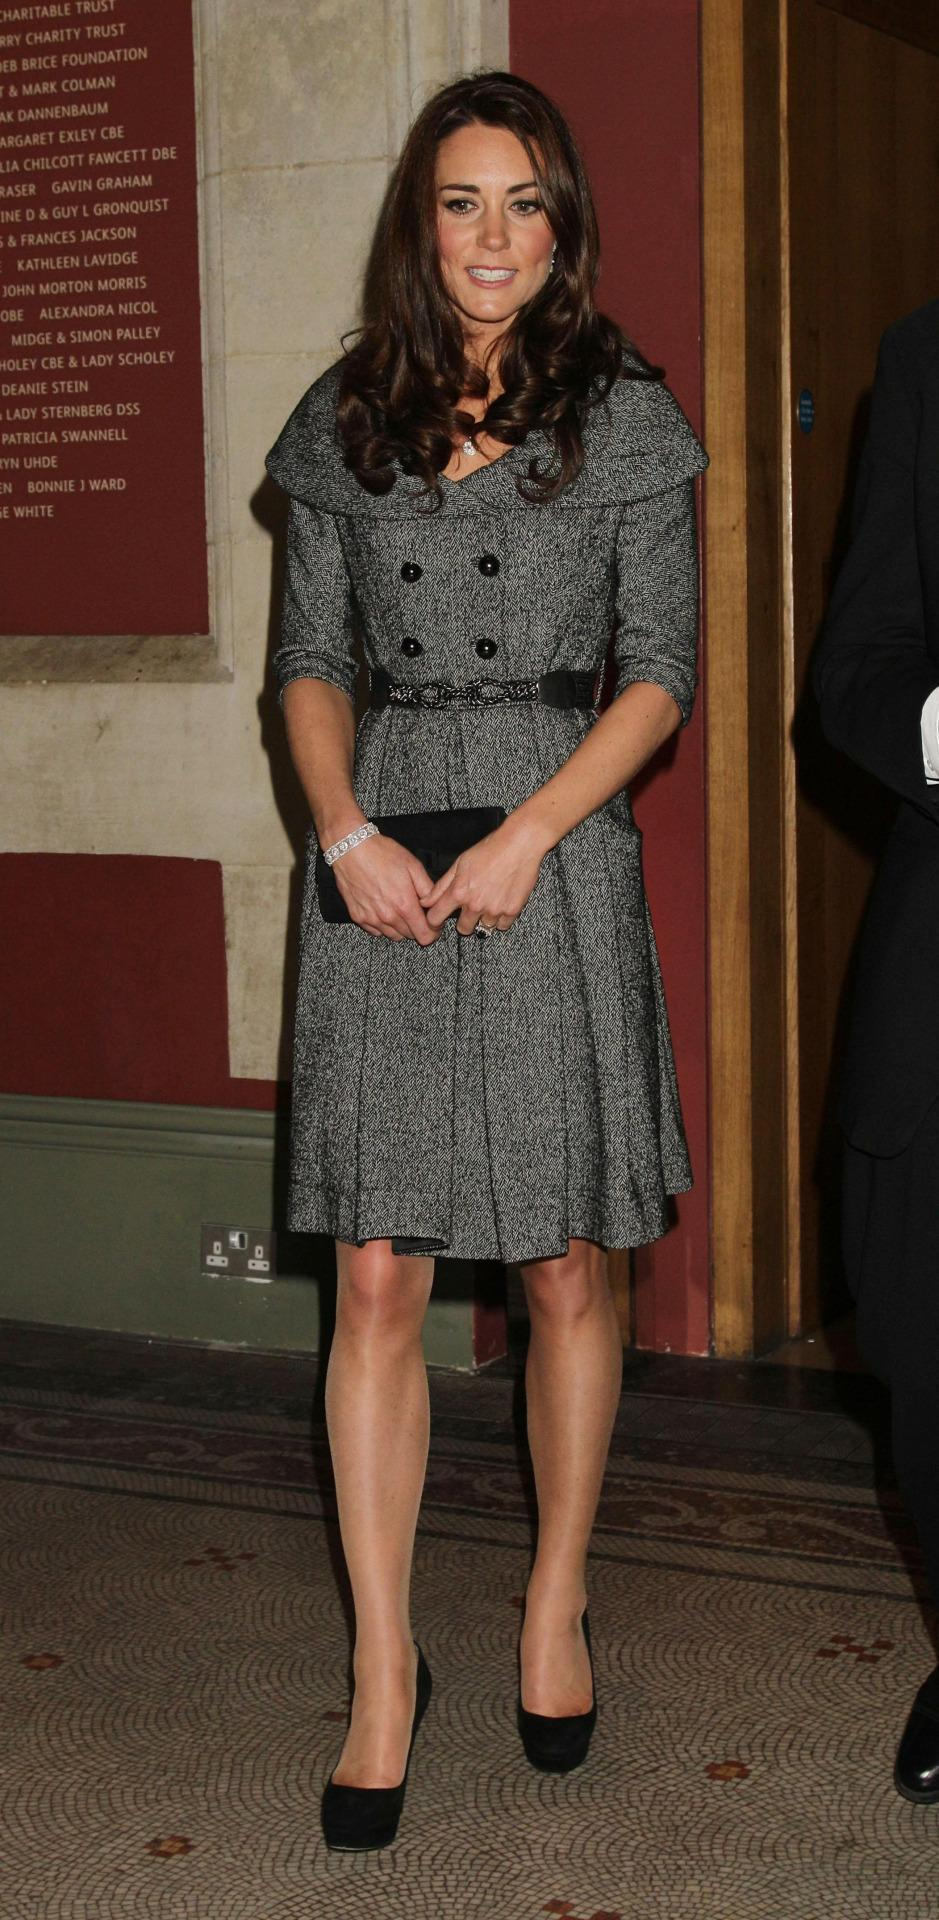 <p>Kate visited an art exhibition in a coat dress by (now defunct) brand, Jesire. She teamed the look with sky high Jimmy Choo pumps.</p><p><i>[Photo: PA]</i></p>